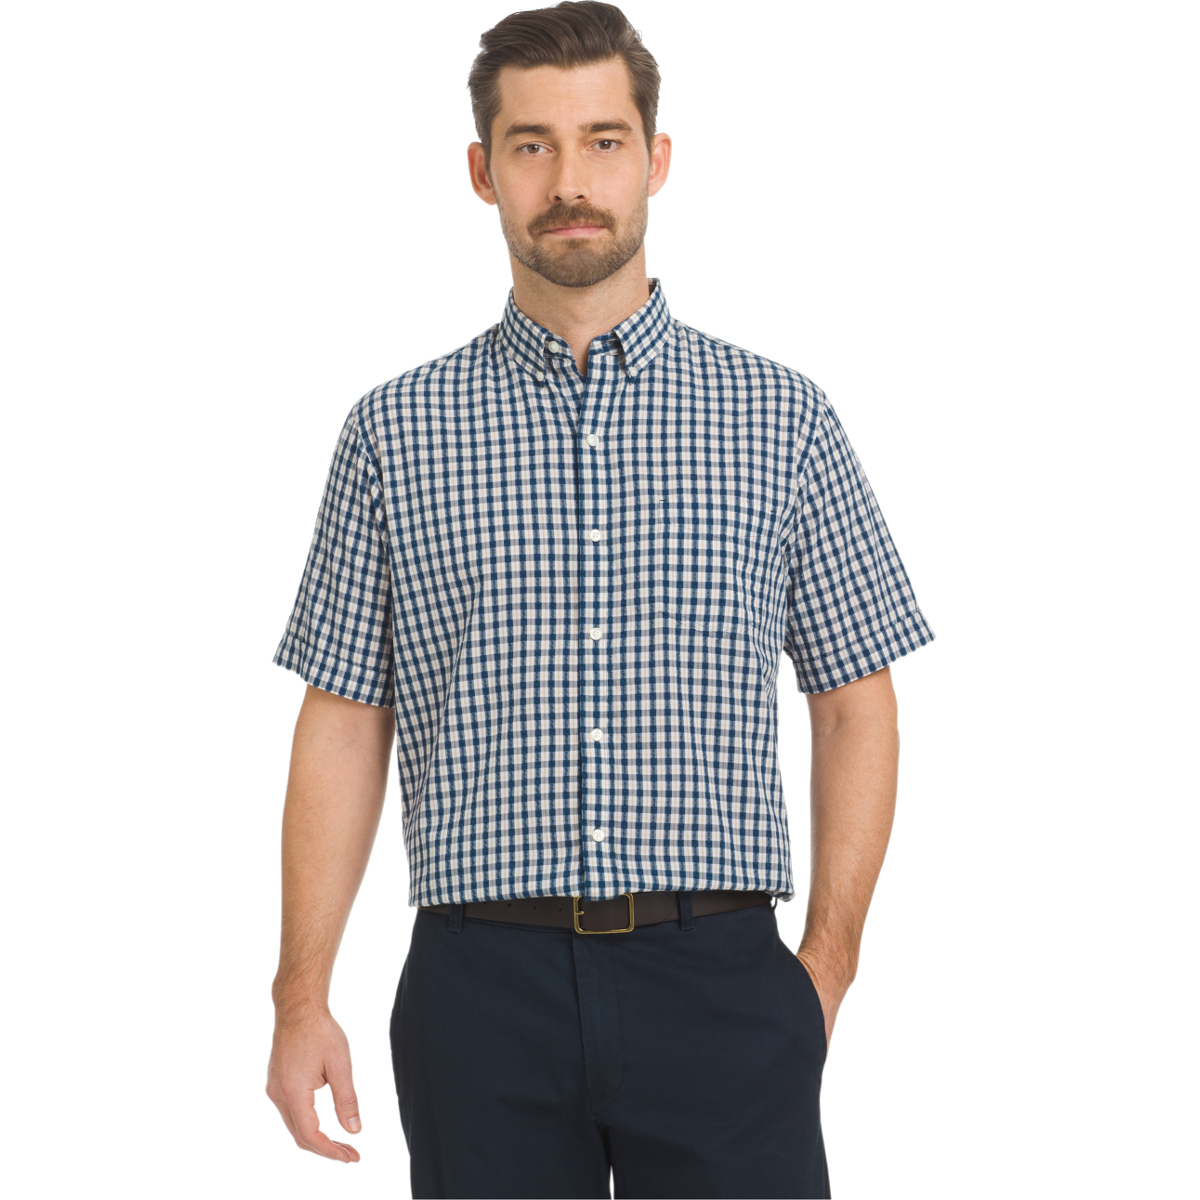 Arrow Men's Seersucker Small Plaid Woven Short-Sleeve Shirt - Blue, L